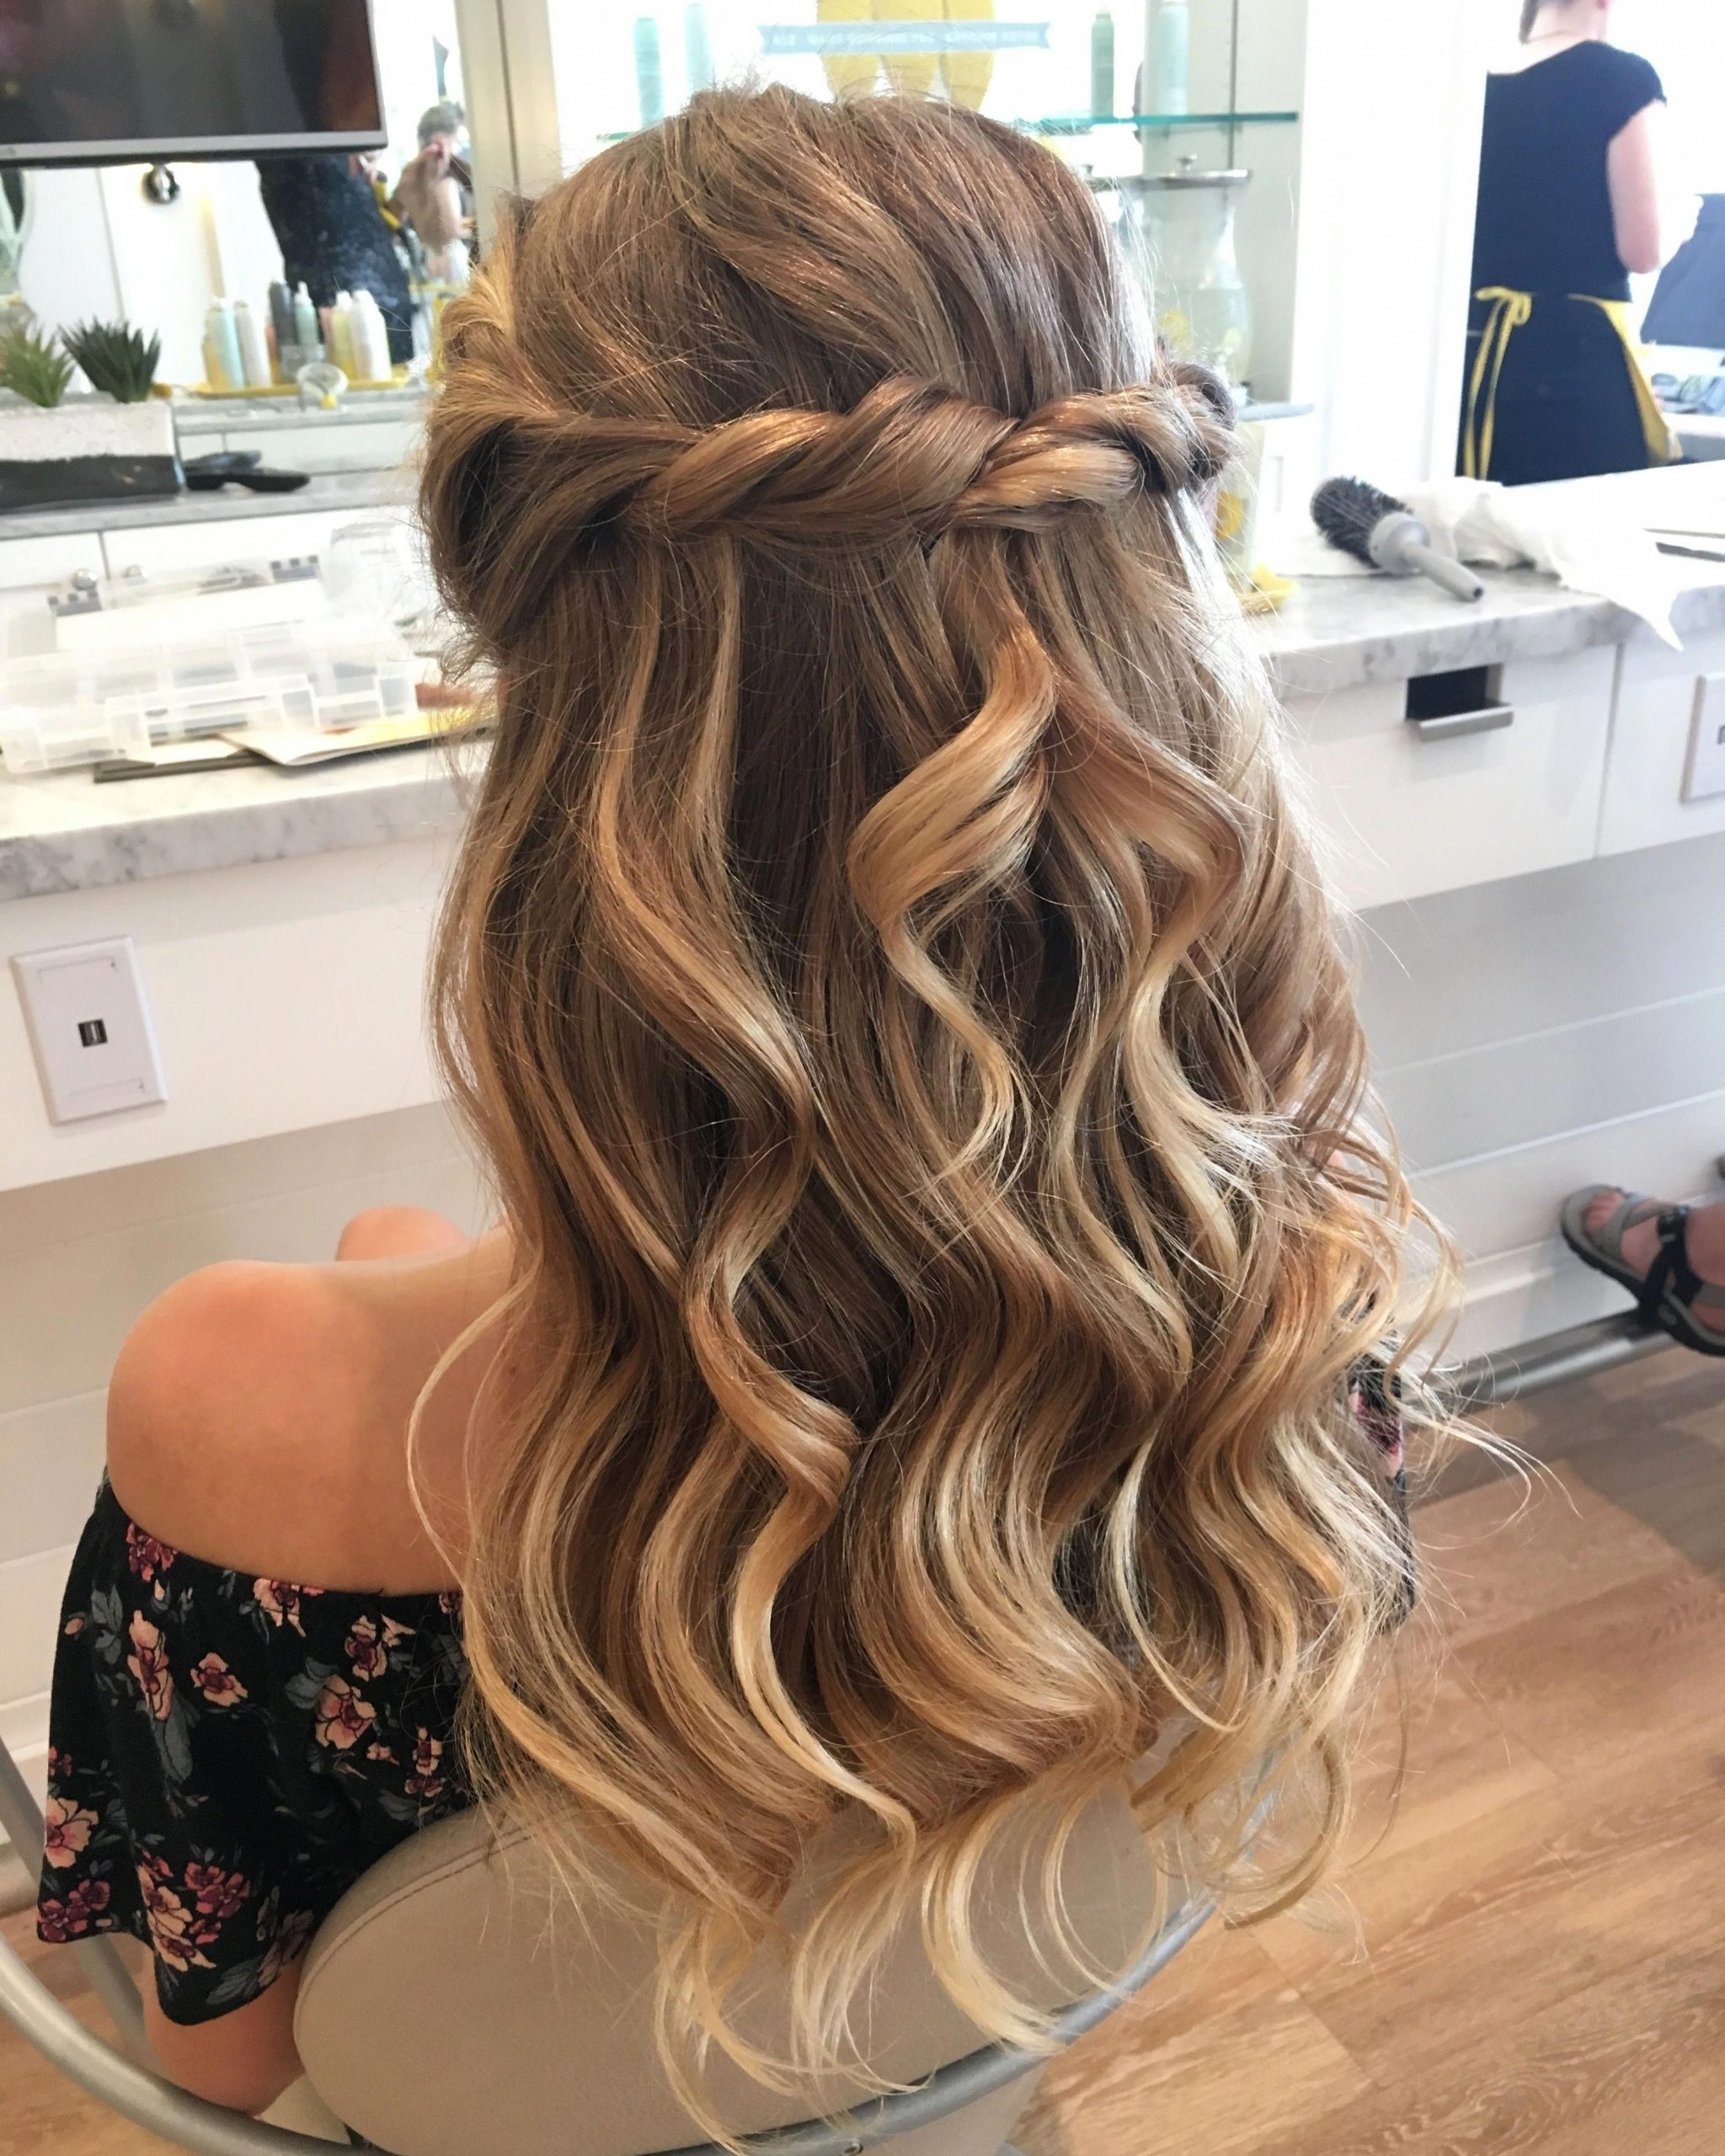 Fabulous All Down Prom Hairstyles #Alldownpromhairstyles Prom Hairstyles Half Up Half Down Medium Hair